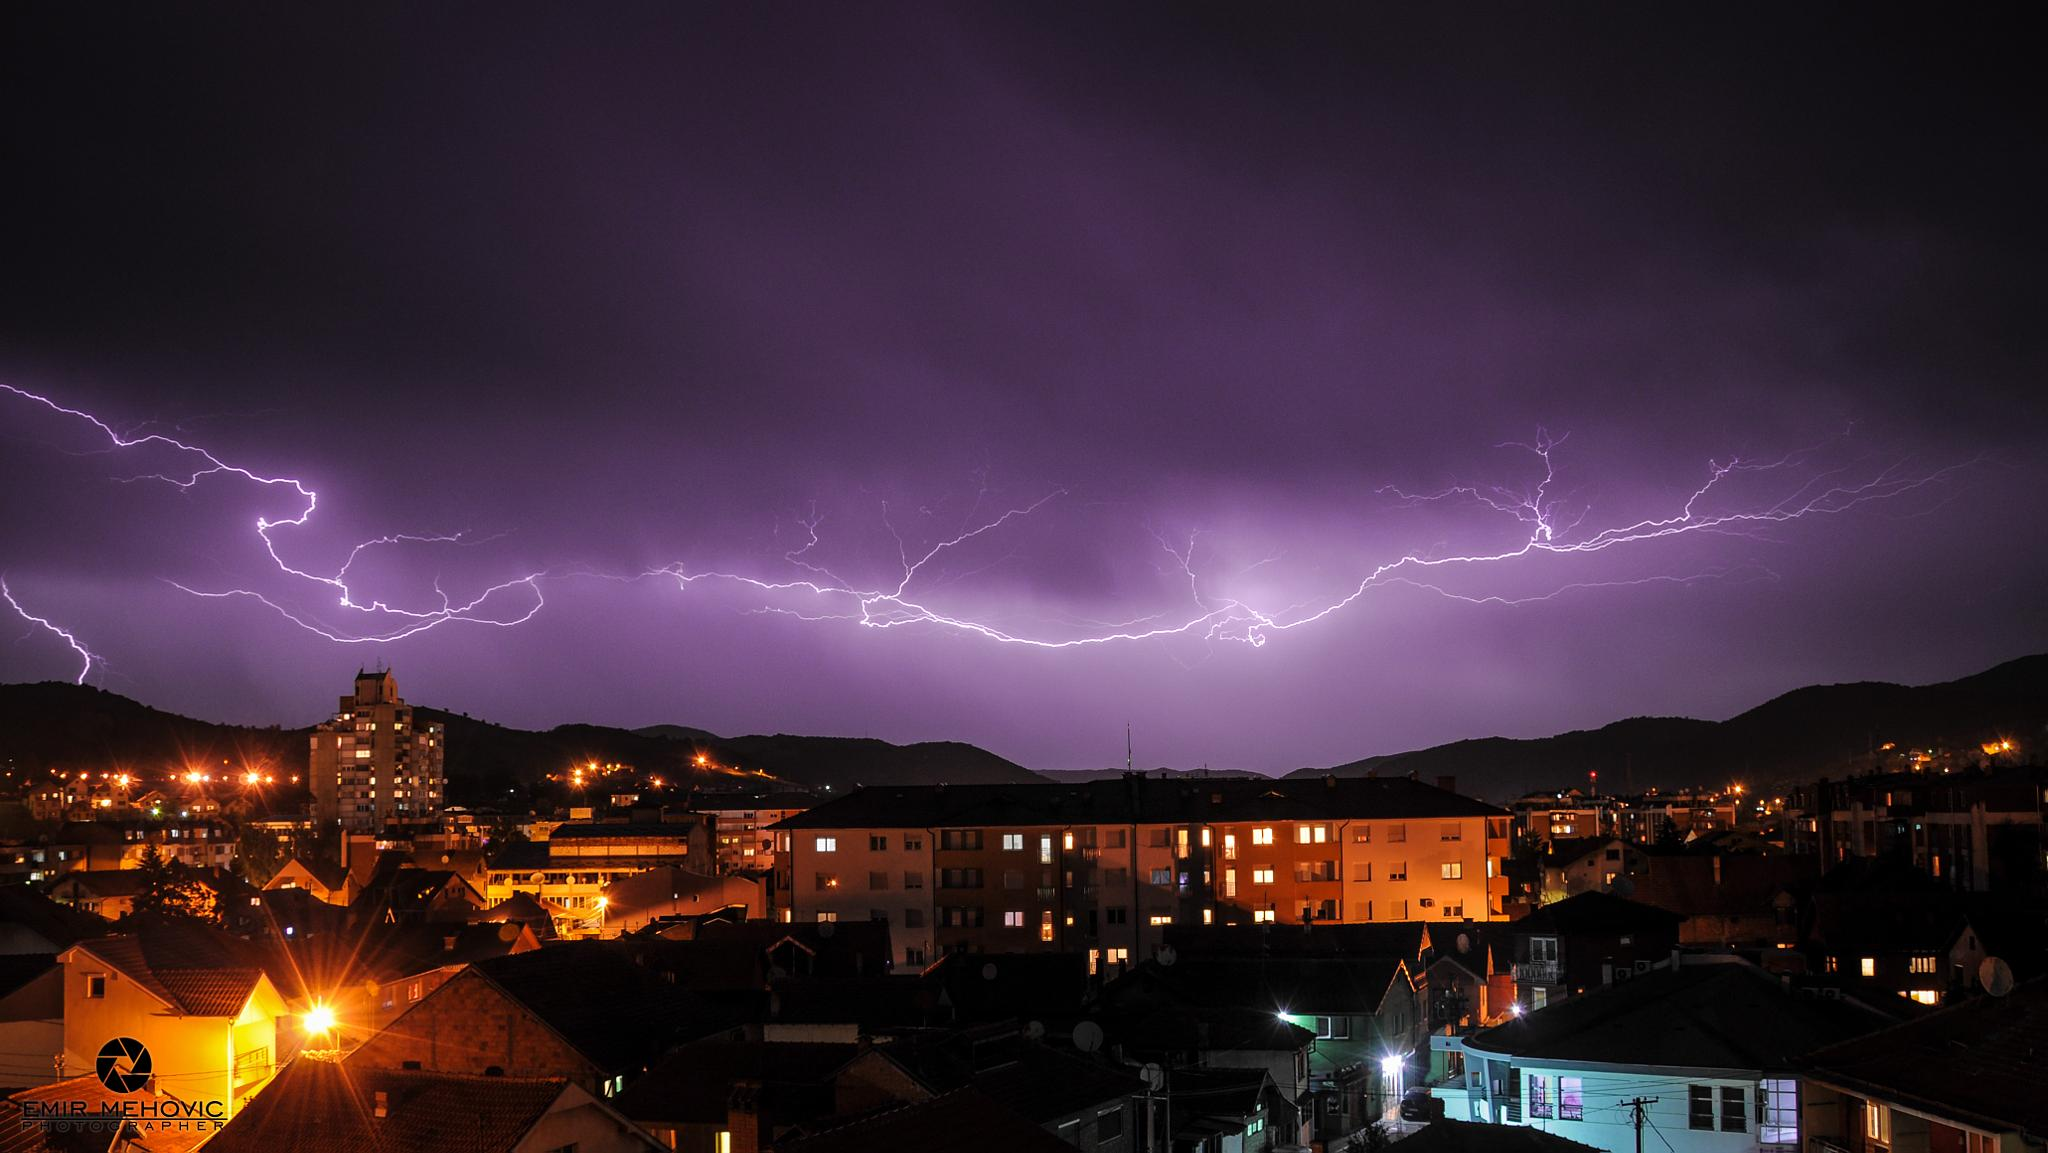 Thunder Storm by emirmehovic1